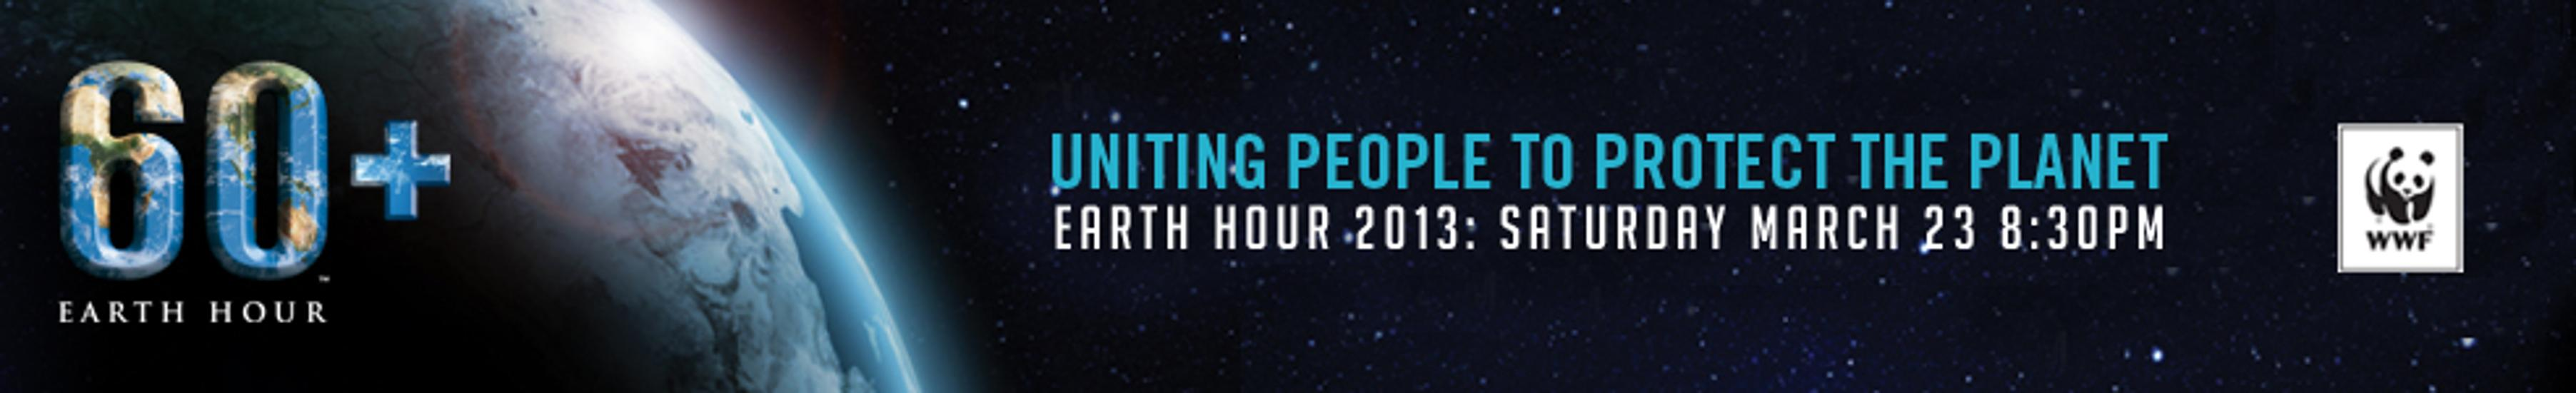 Hungary Supports Earth Hour 2013 On Saturday, 23 March